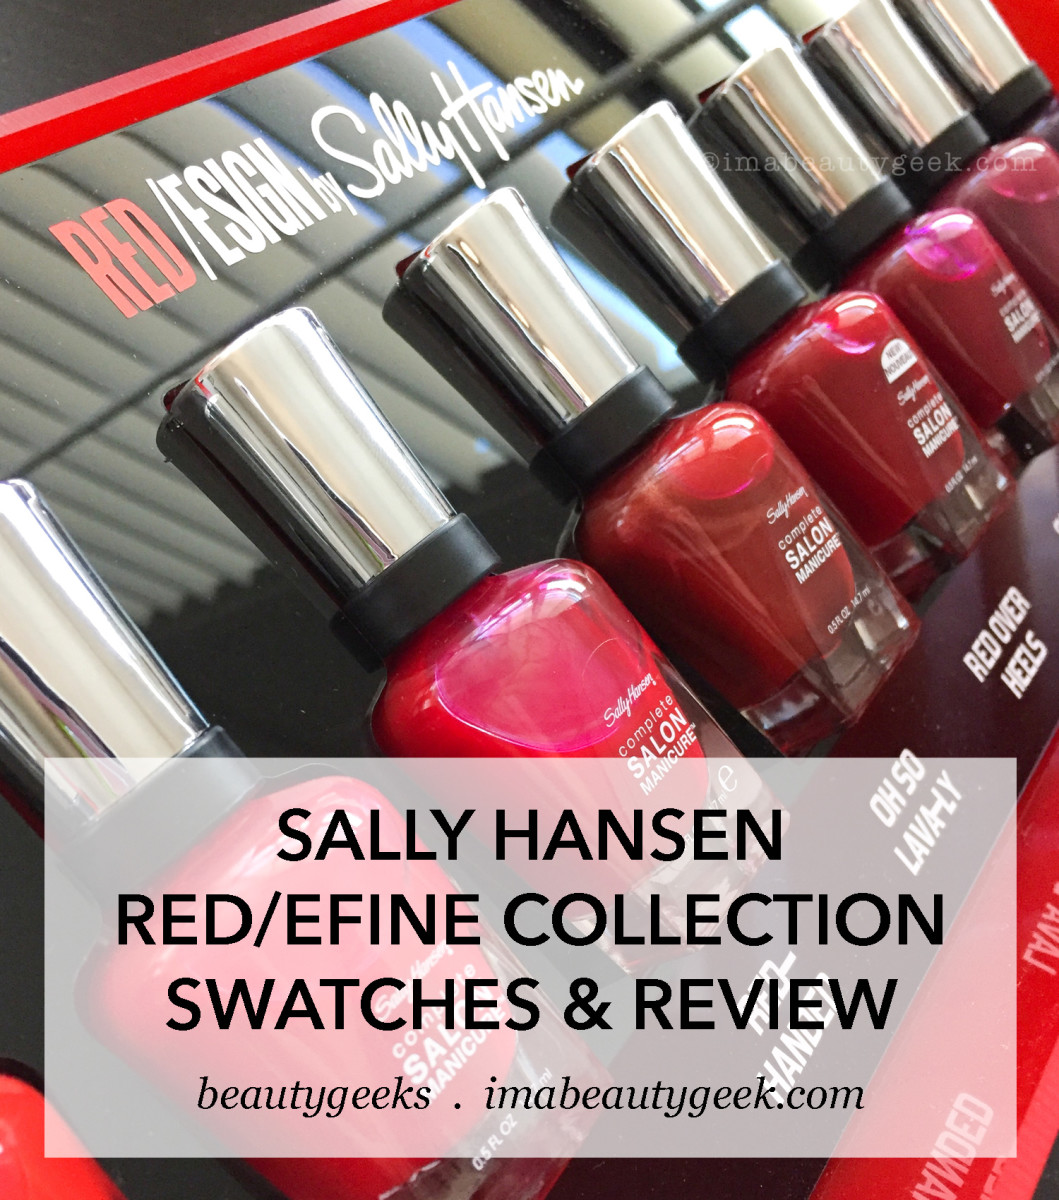 SALLY HANSEN RED/ESIGN COLLECTION SWATCHES & REVIEW - Beautygeeks